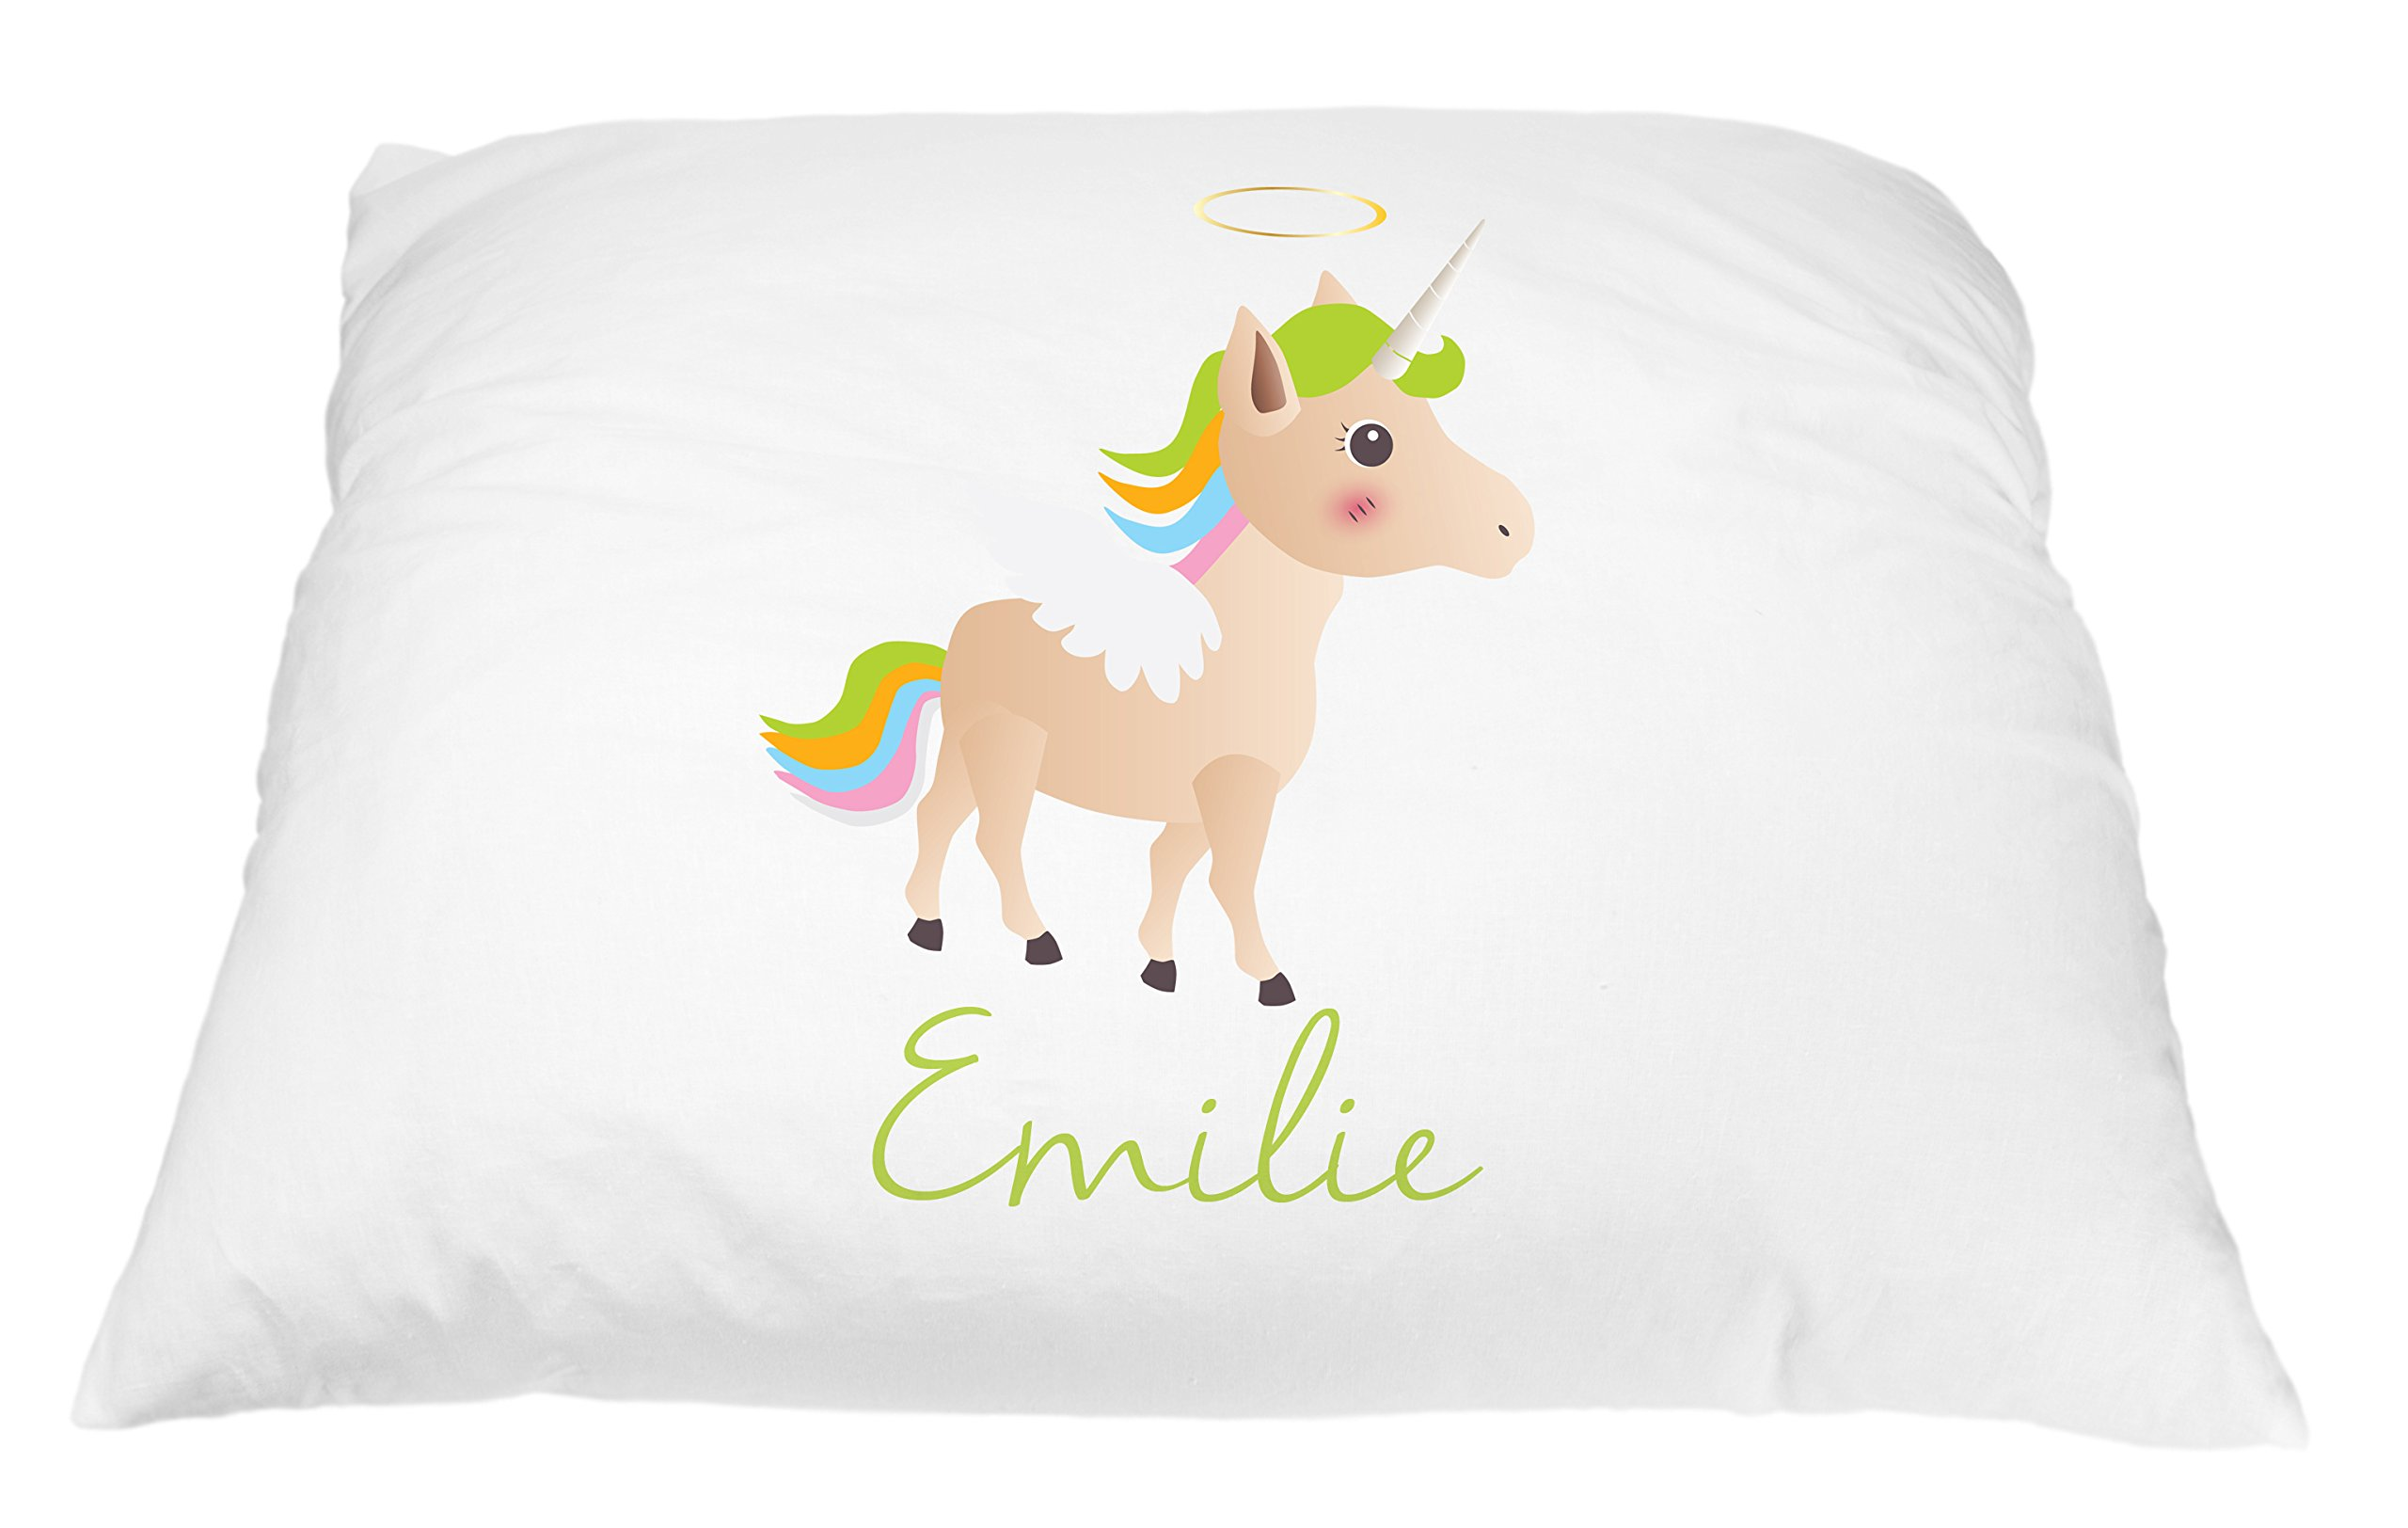 Personalized Kid's Unicorn Pillowcase Microfiber Polyester Standard 20 by 30 Inches, Green Haired Unicorn Pillow Cover for Girls, Personalized Pillow with Names, Personalized Gifts for Kids